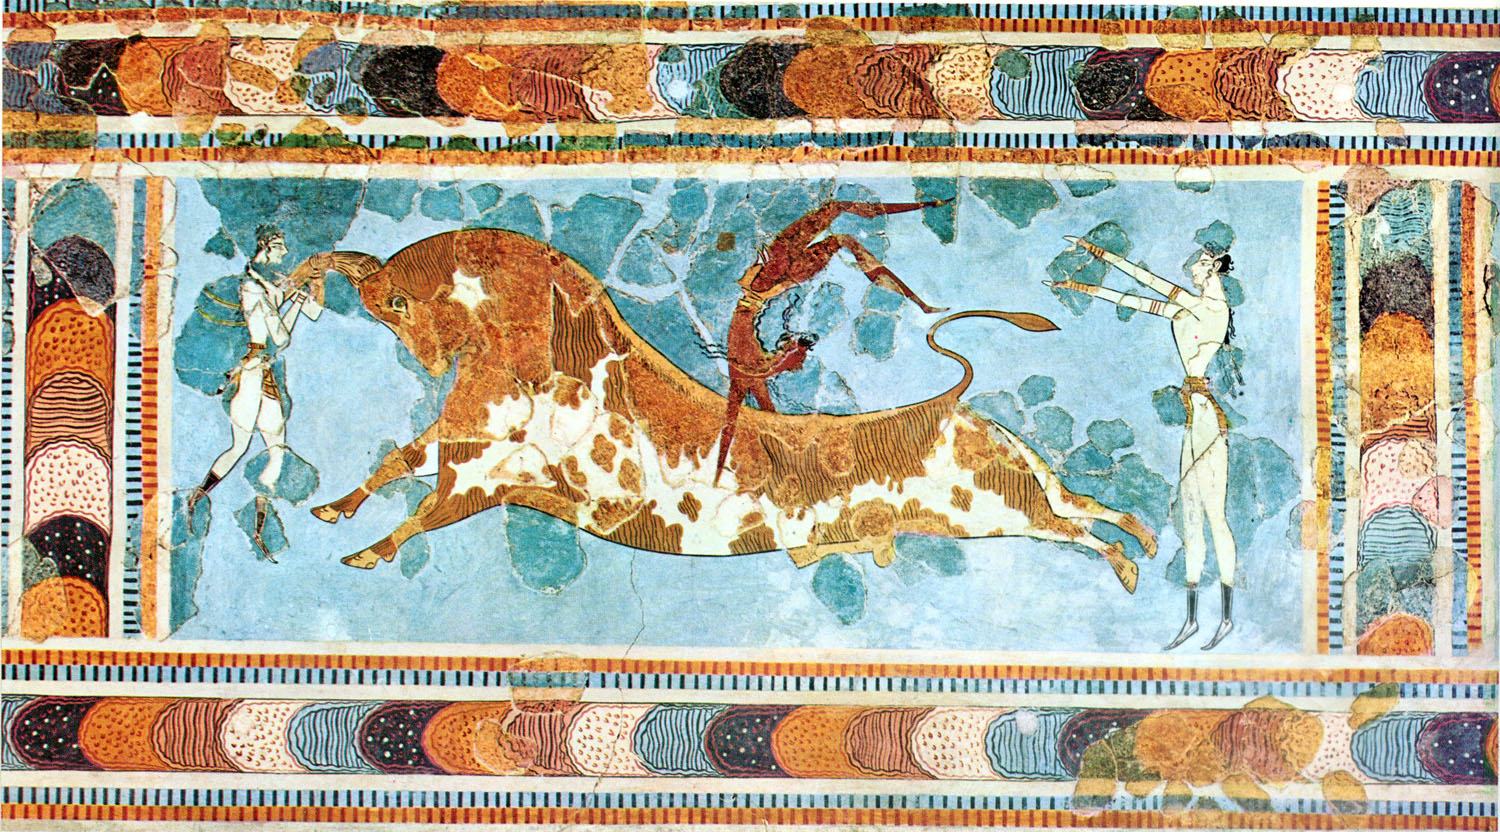 toreador fresco 6 volume 53, number 3 expedition bulls and bull-leaping in the minoan world by jeremy mcinerney.